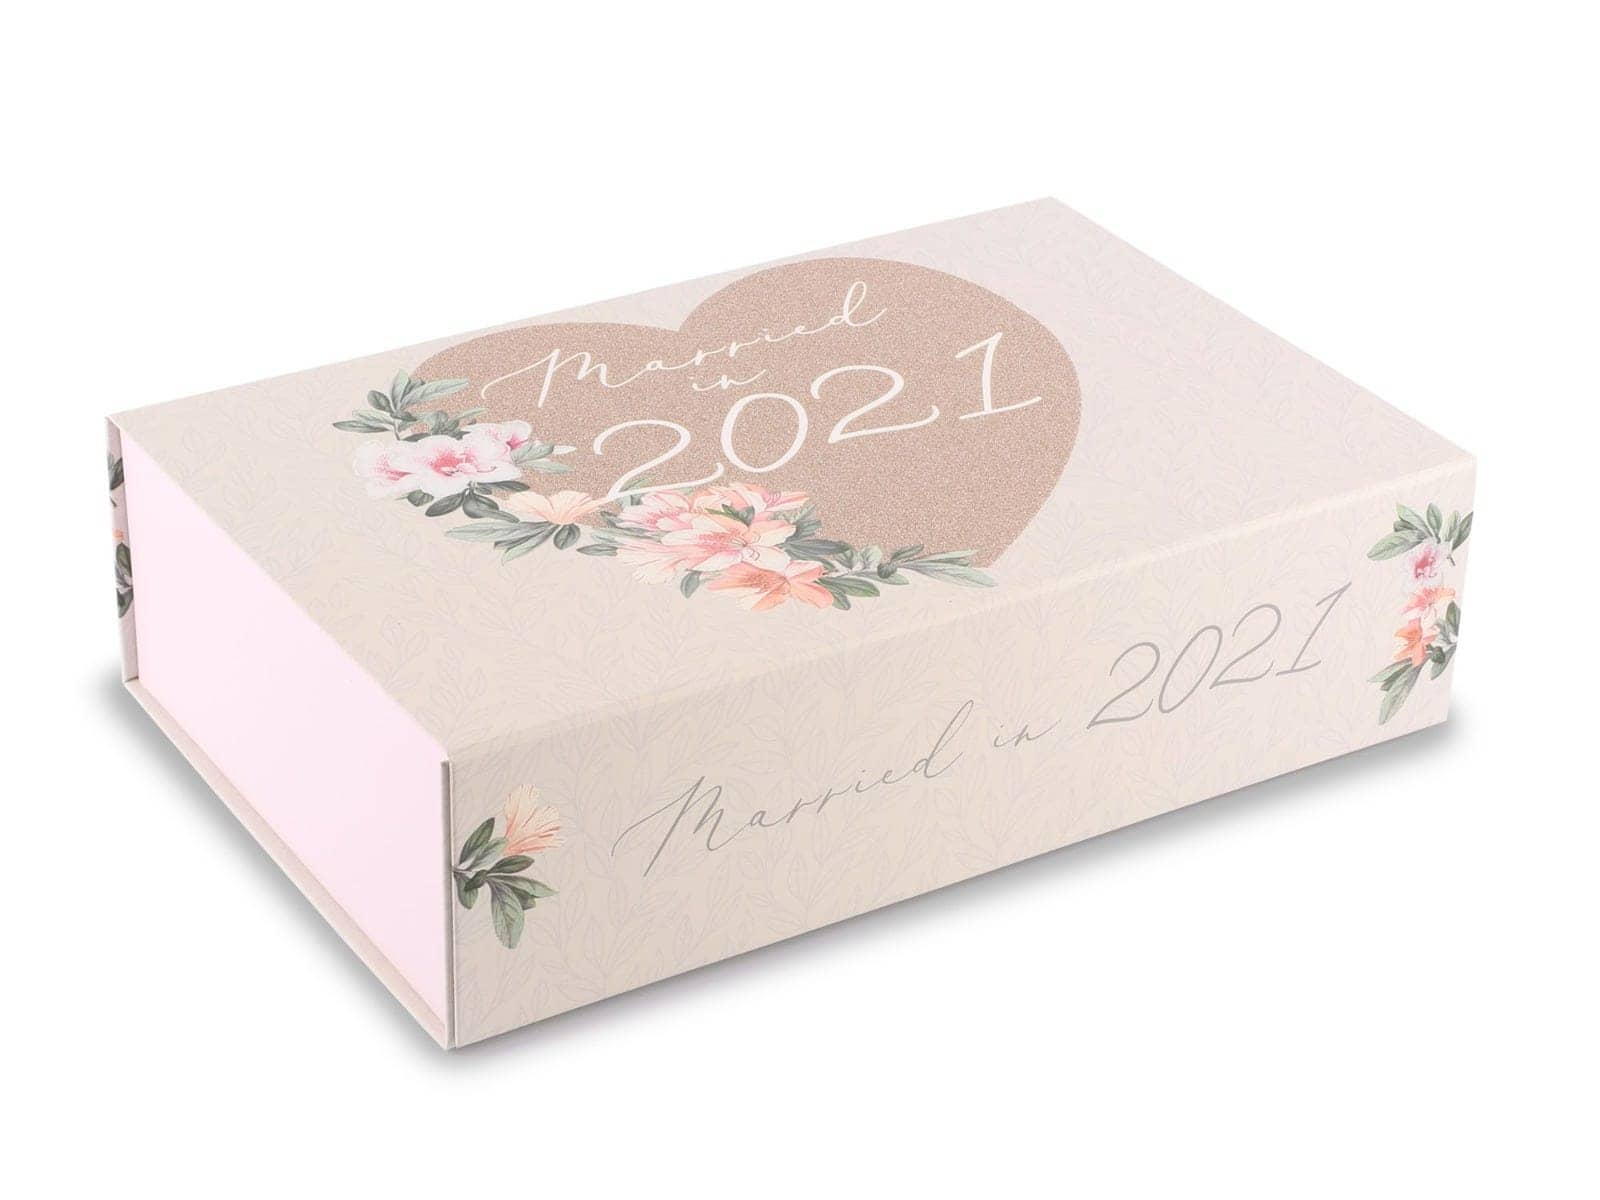 Clintons Married in 2021 Gift Box